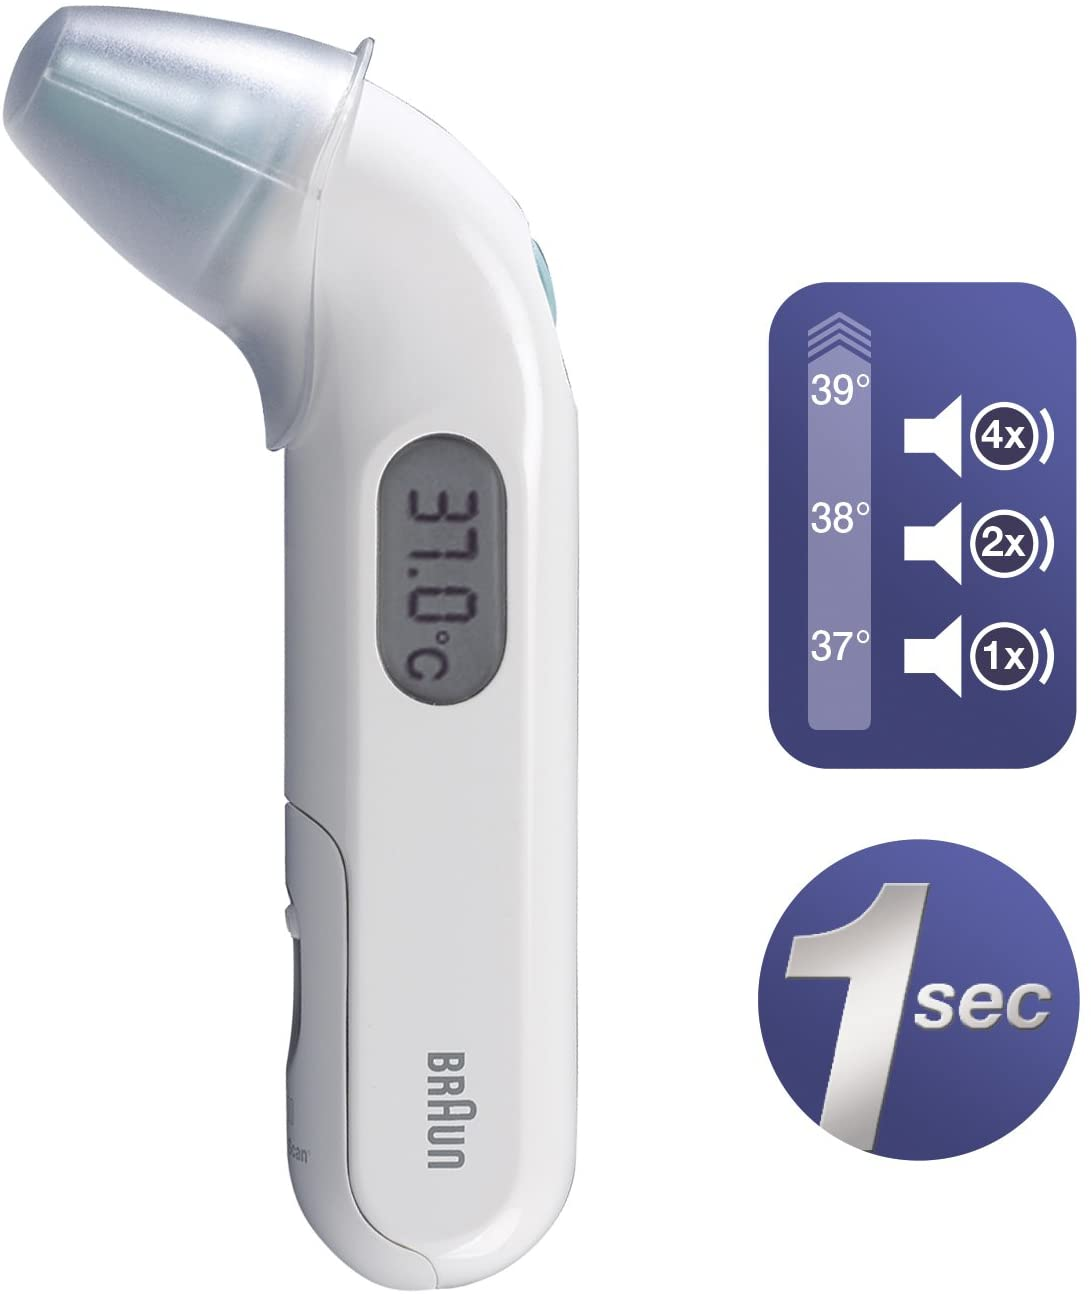 Braun irt3030 Thermoscan 3 Thermomètre infrarouge pour oreille